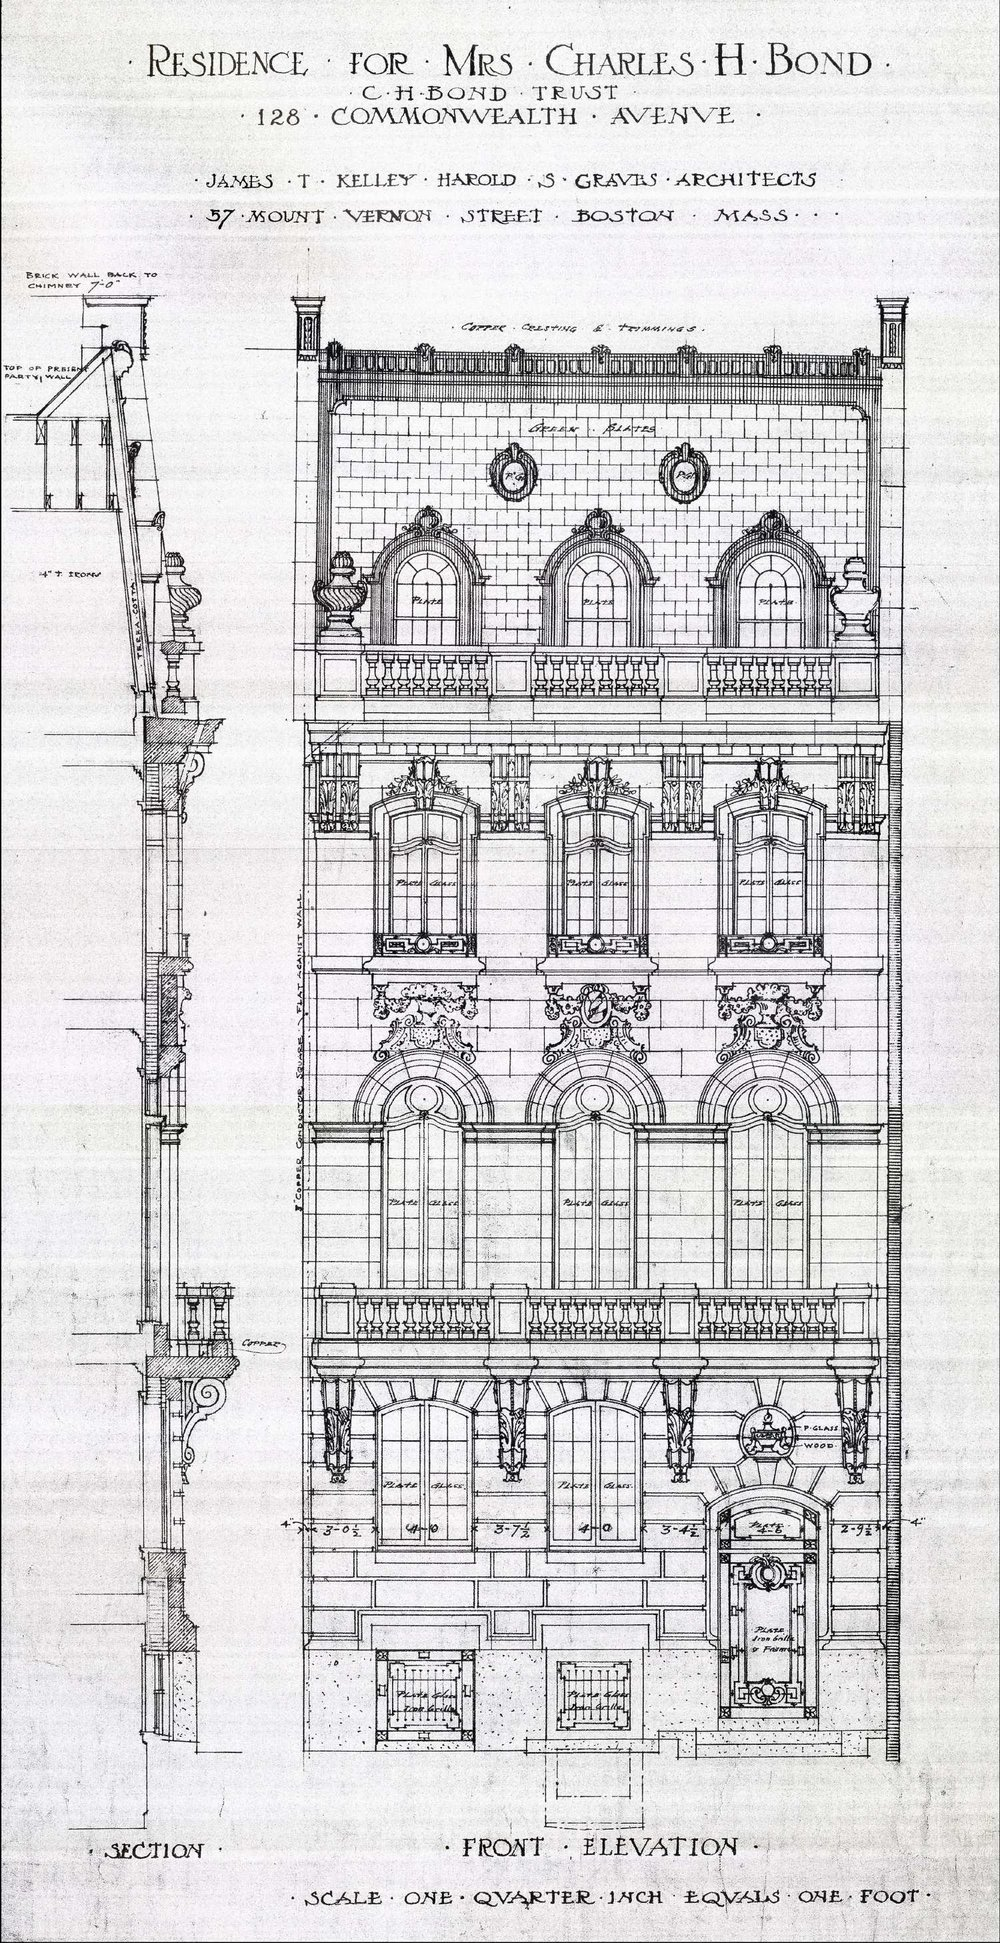 Architectural rendering of remodeled front façade of 128 Commonwealth (1909) by James T. Kelley and Harold S. Graves, architects; courtesy of the Boston Public Library Arts Department